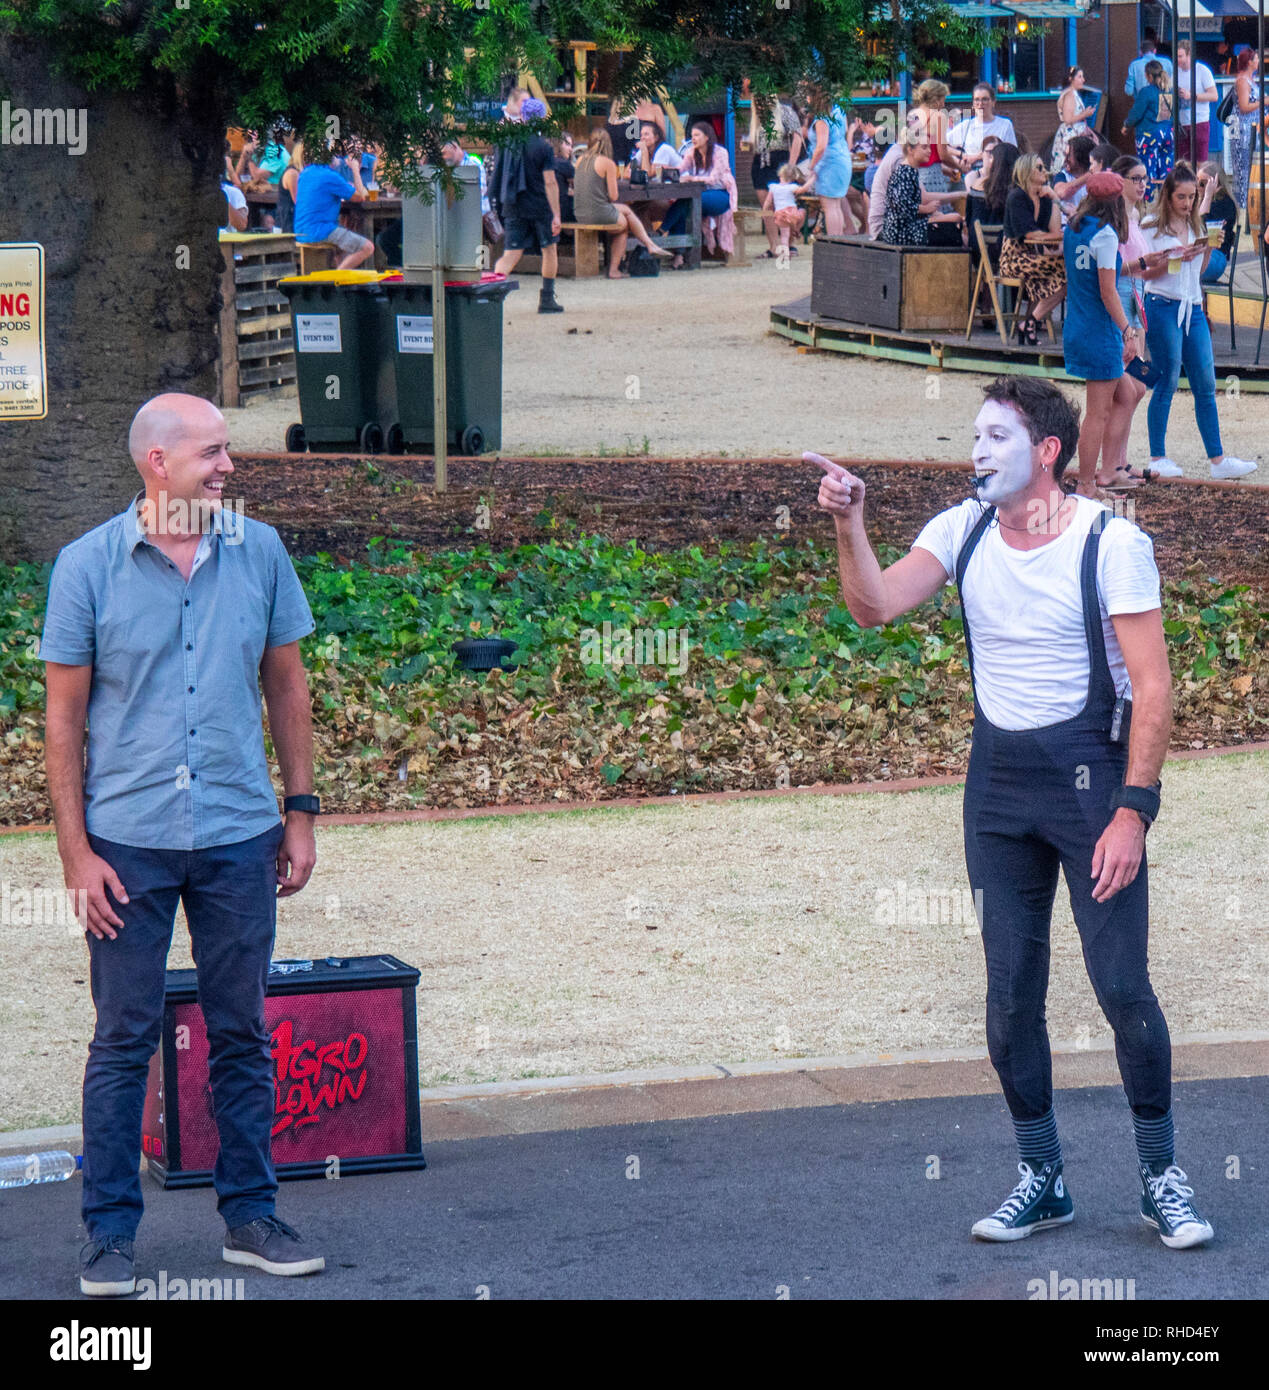 A mime artist performing in front of a crowd at Fringe World Festival Russell Square Northbridge Perth WA Australia. - Stock Image